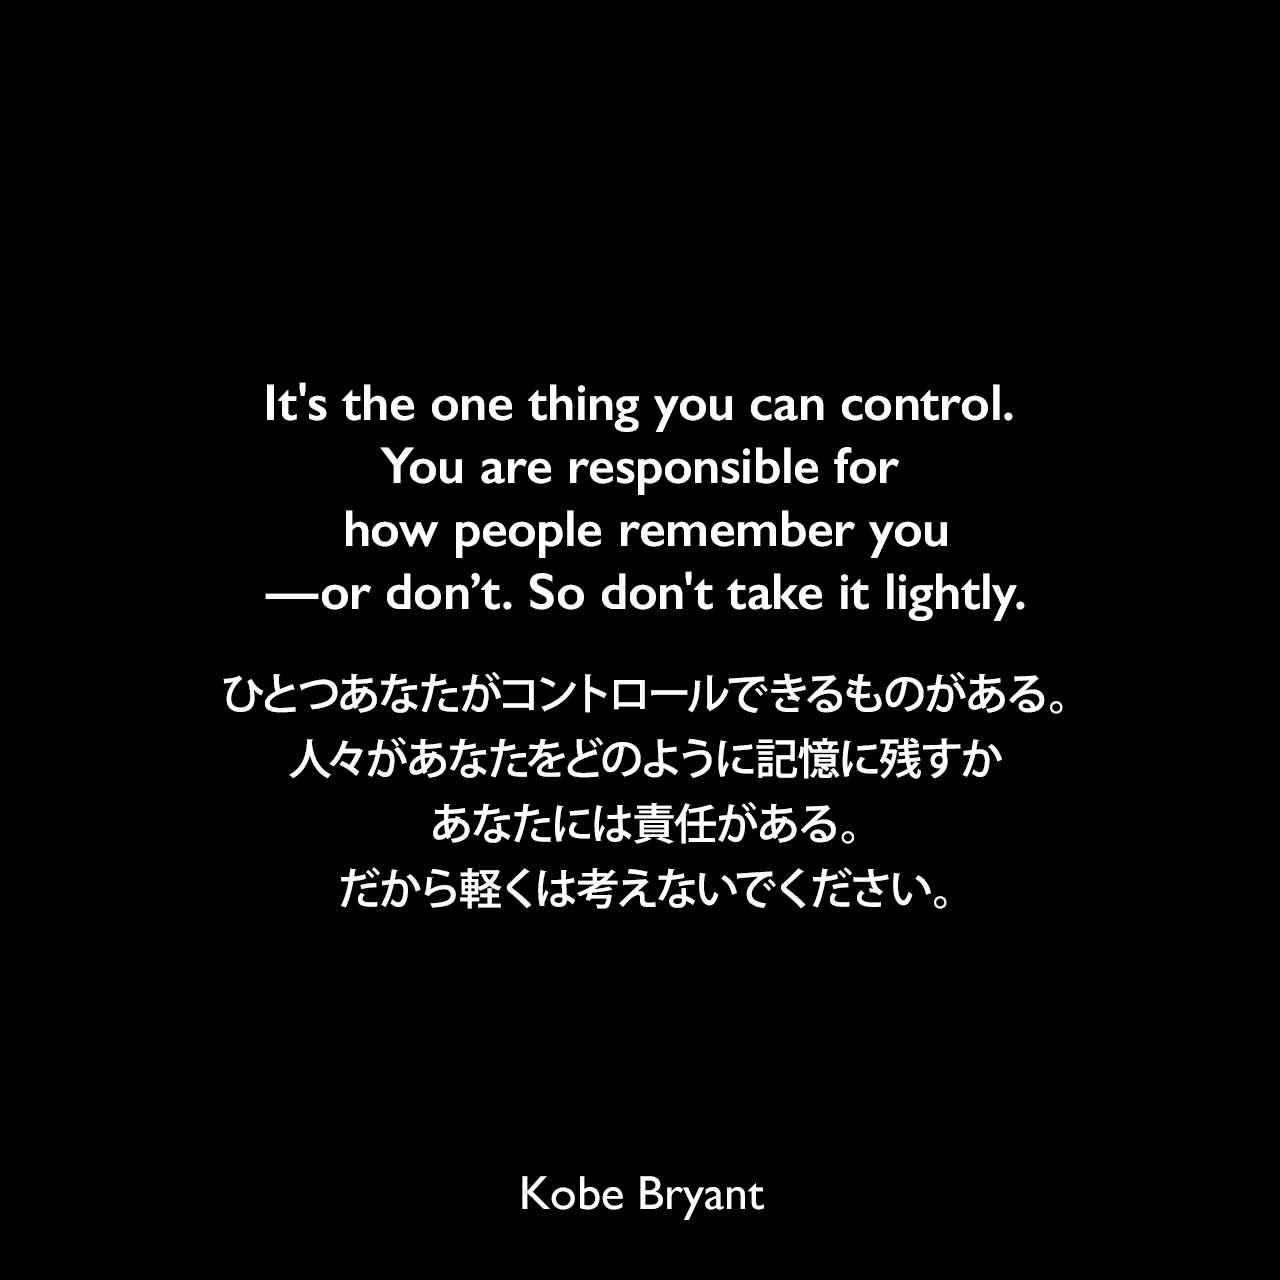 It's the one thing you can control. You are responsible for how people remember you—or don't. So don't take it lightly.ひとつあなたがコントロールできるものがある。人々があなたをどのように記憶に残すか、あなたには責任がある。だから軽くは考えないでください。Kobe Bryant